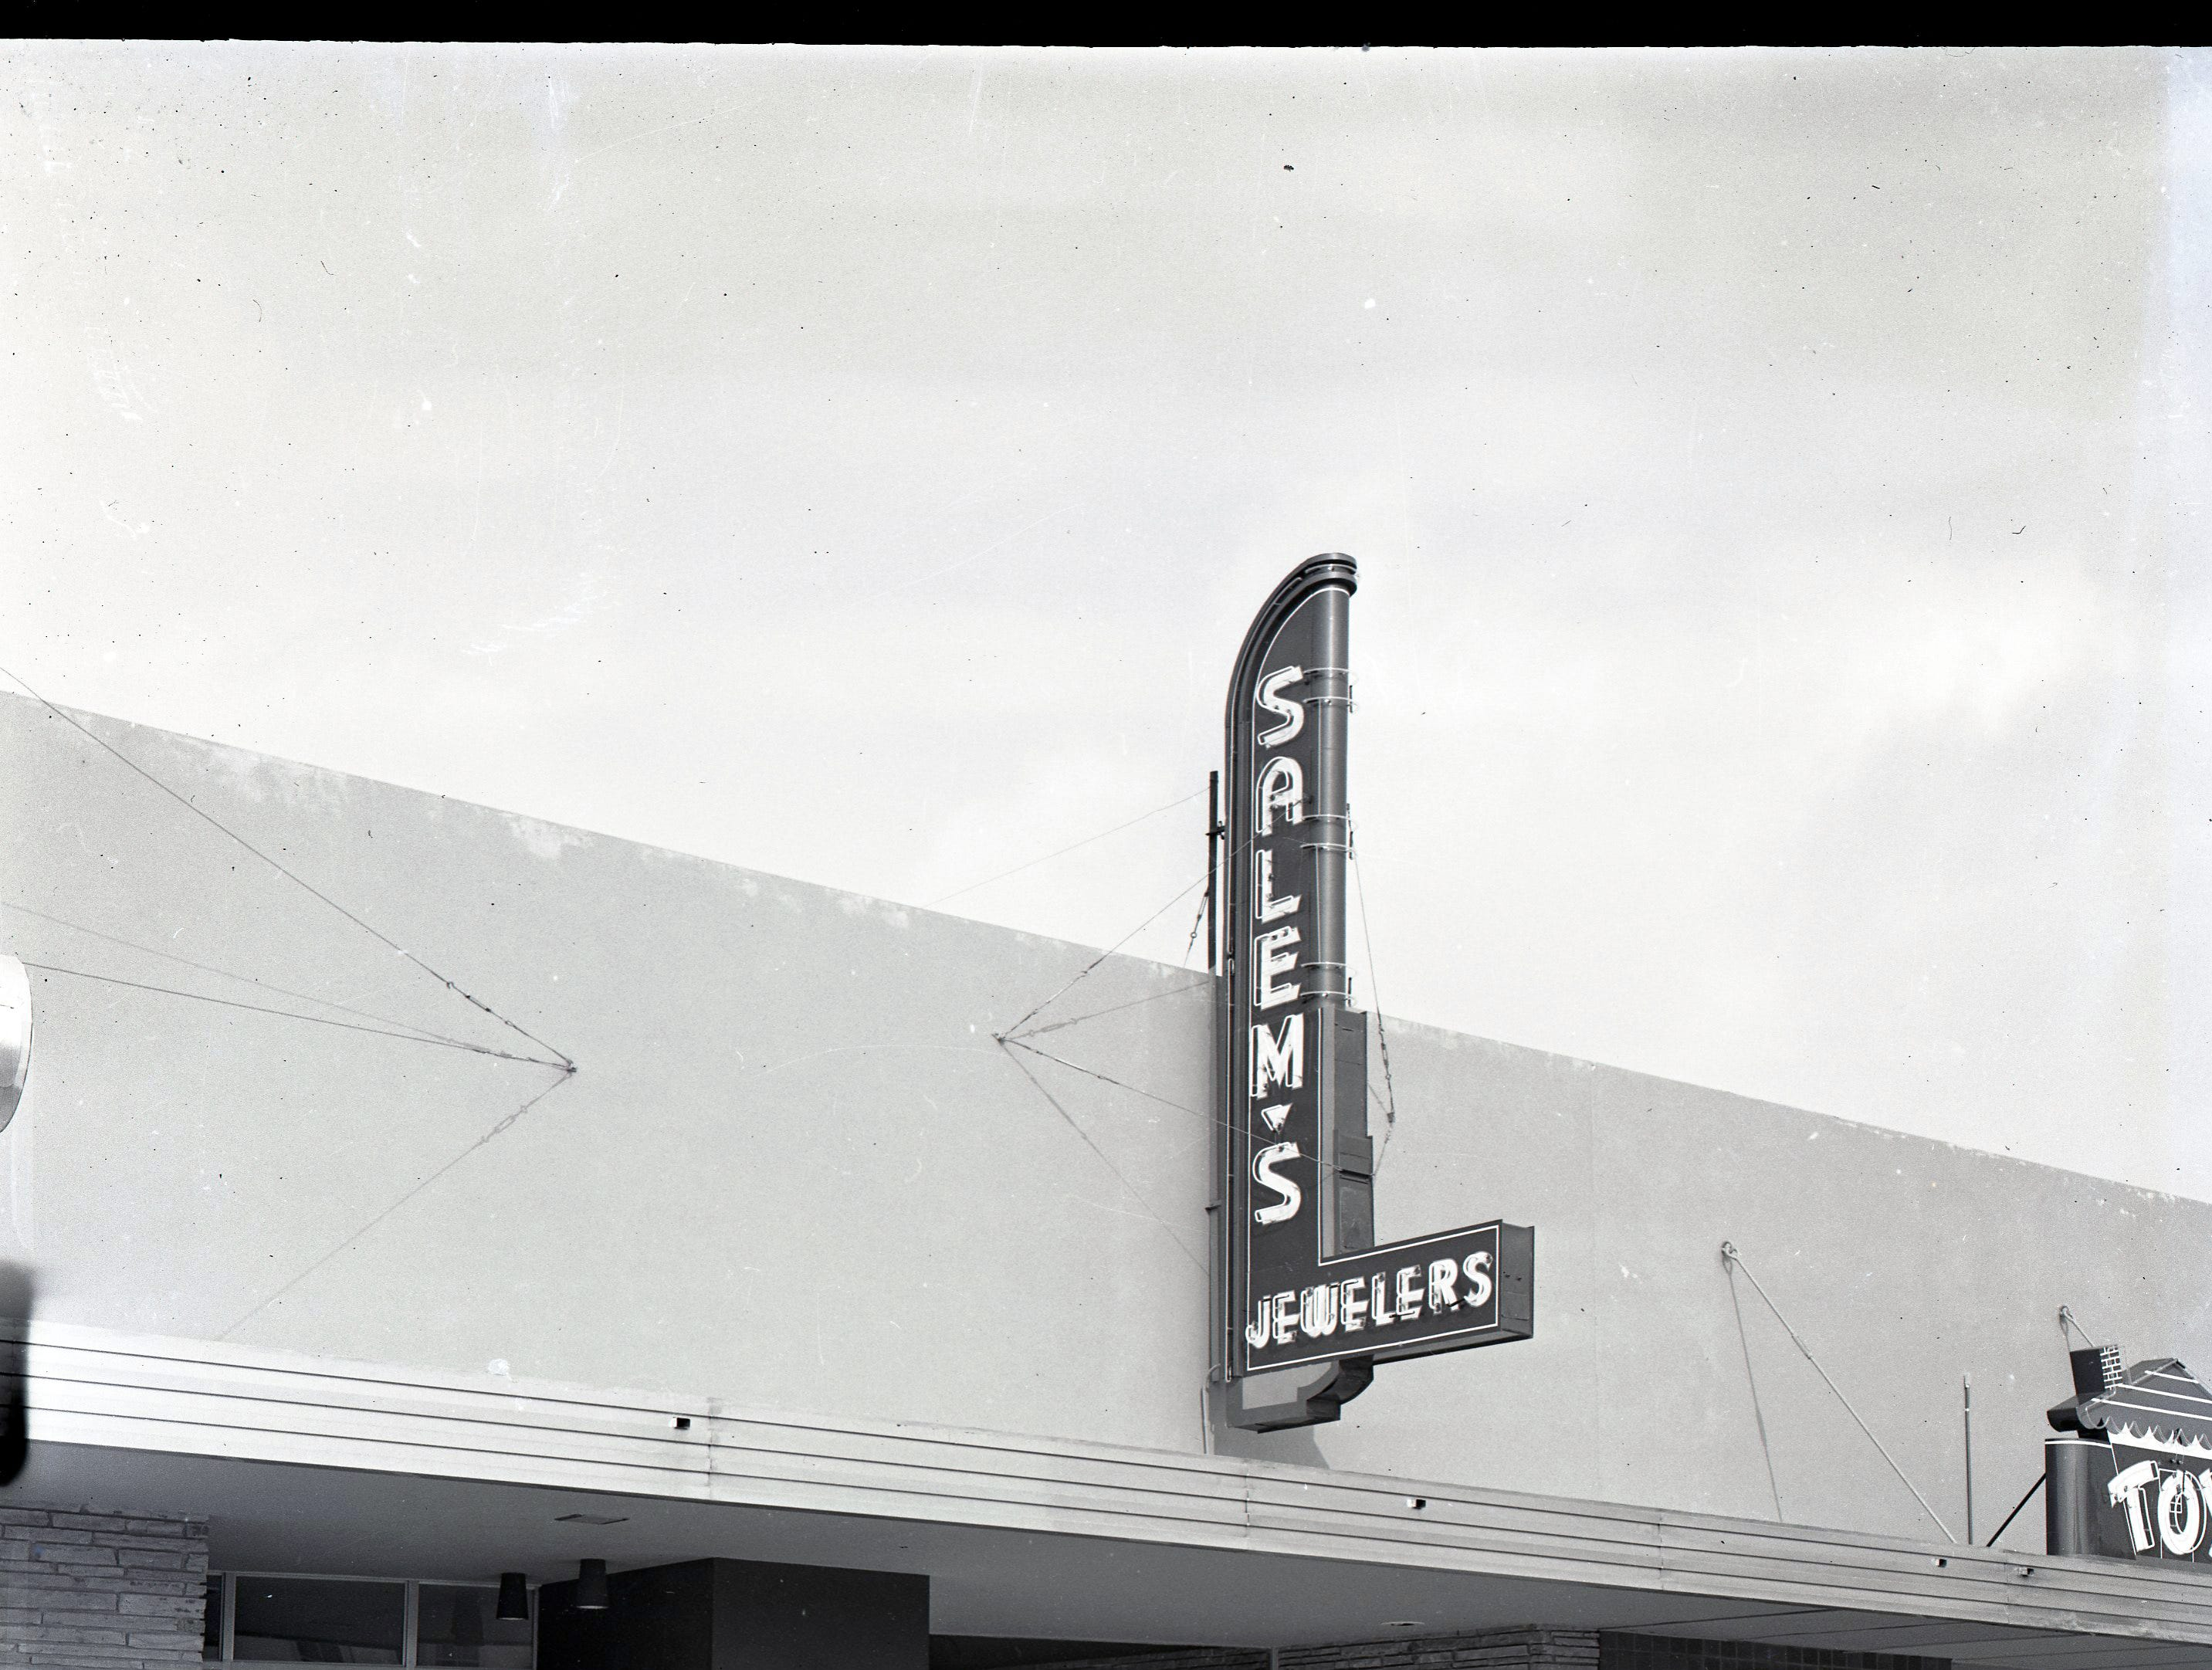 Salem's Jewelers at 1819 S. Alameda St. in Six Points in a photo from the 1950s. The Toy House is next door.